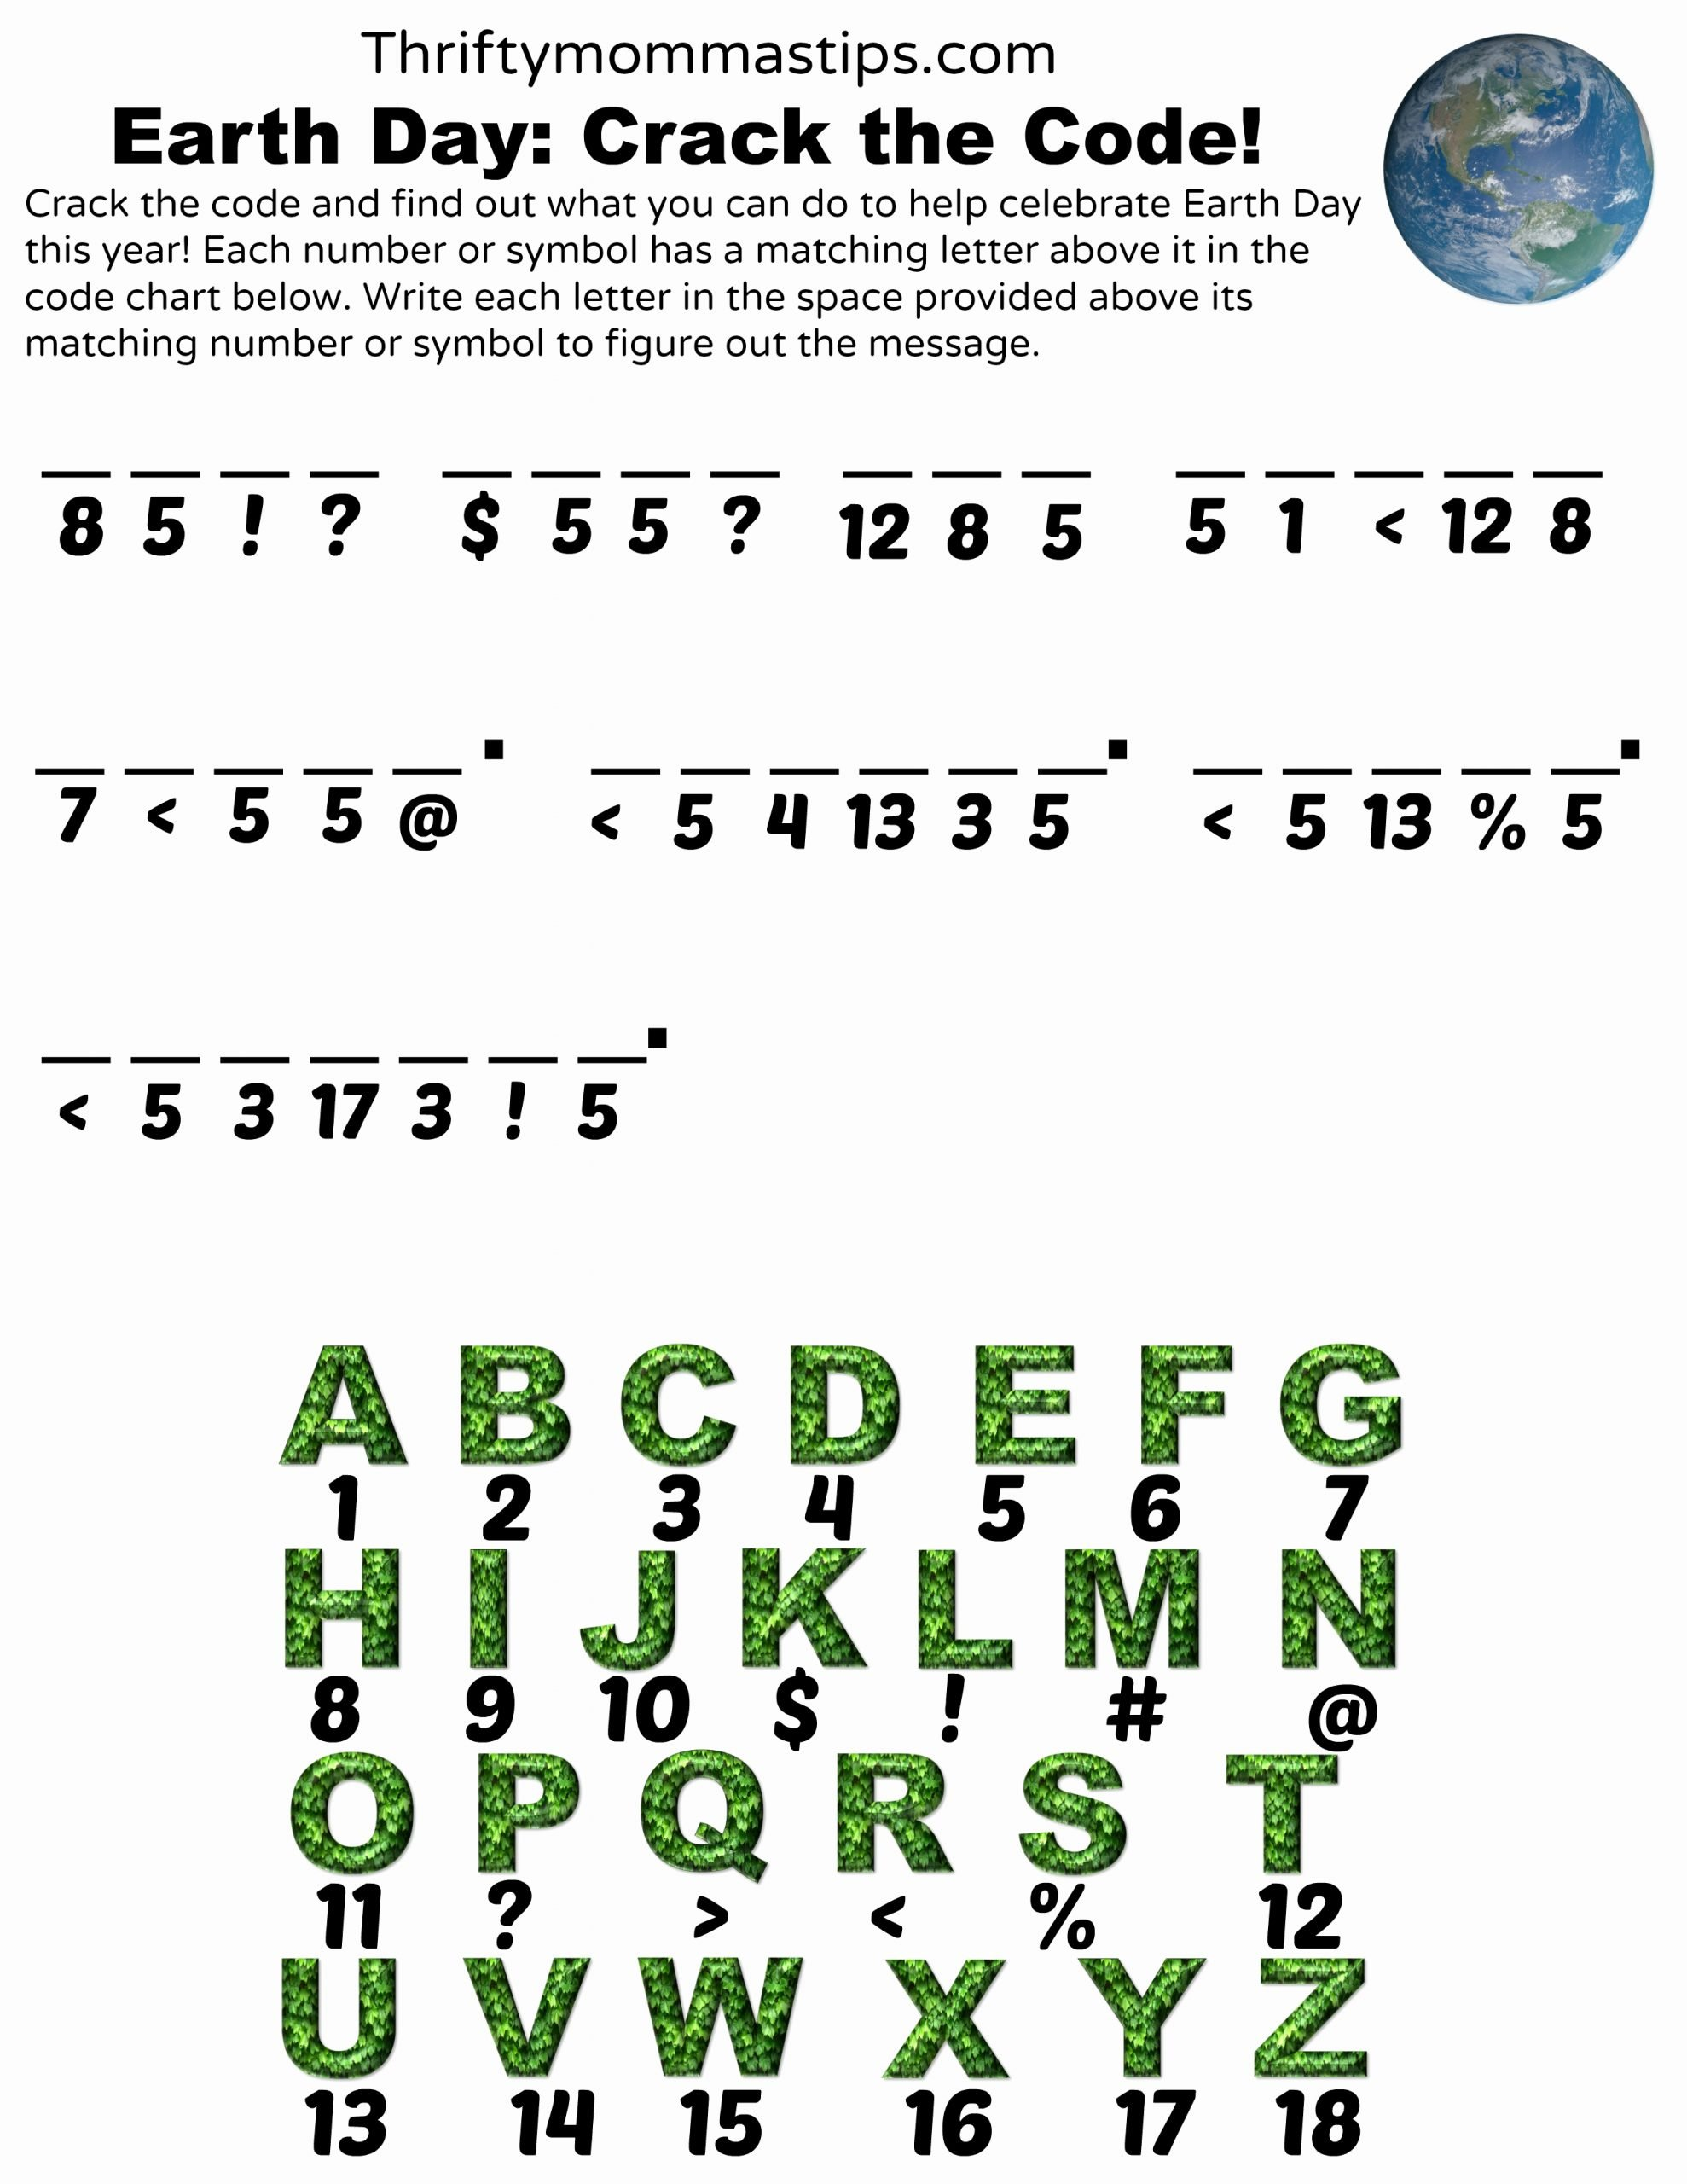 Crack the Code Worksheets Printable Lovely Earth Day Crack the Code Printable Thrifty Mommas Tips